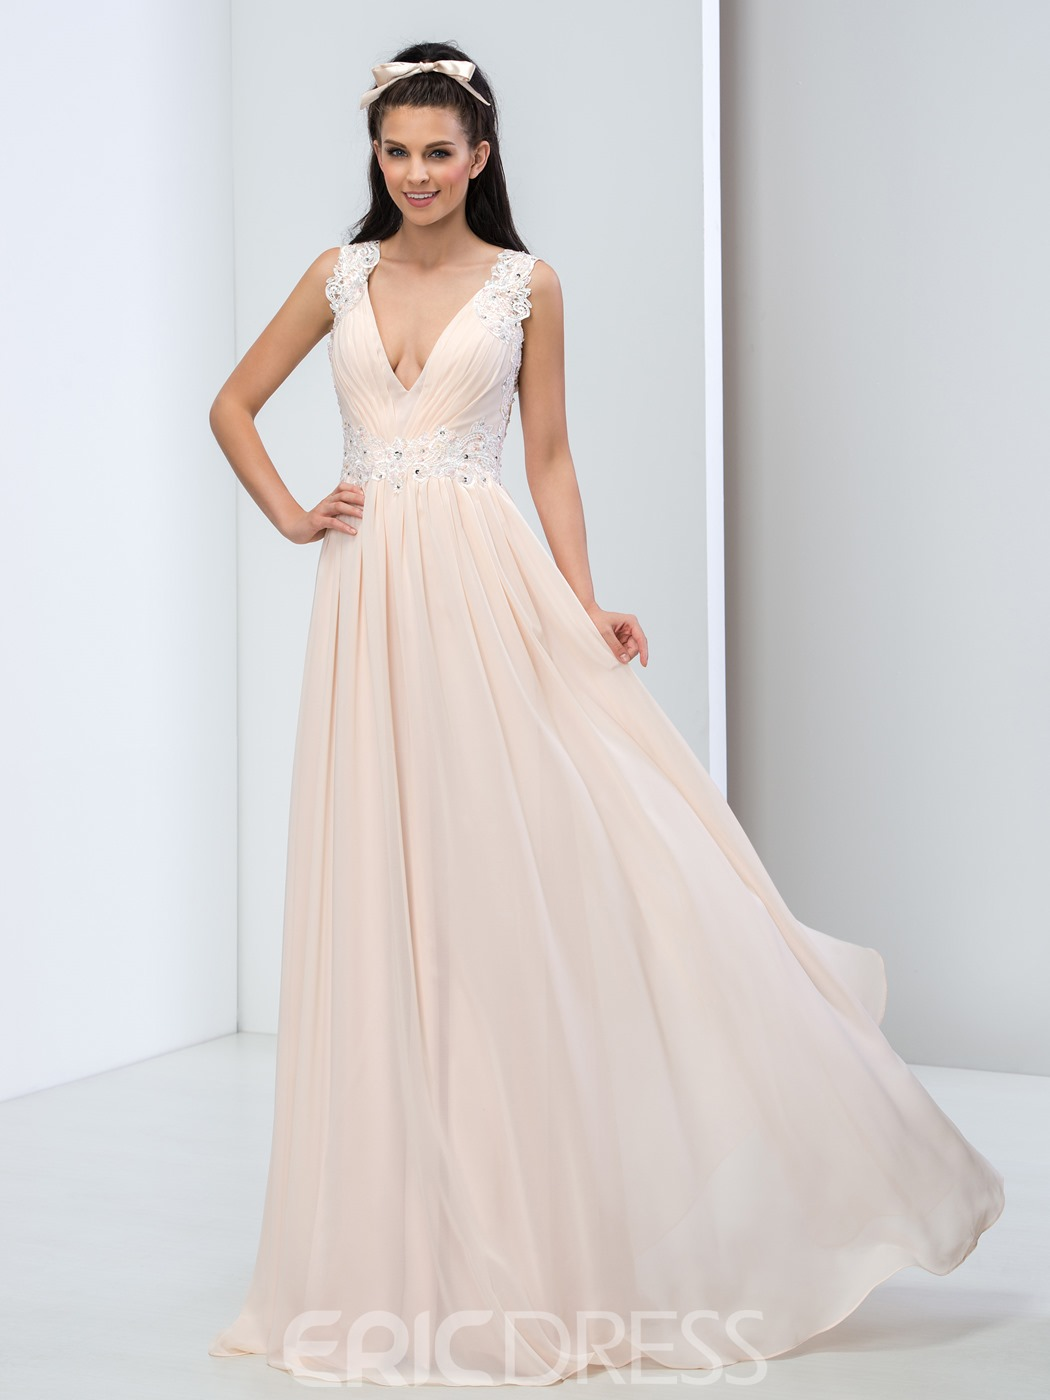 Ericdress A-Line Deep-V Neck Open Back Appliques Prom Dress